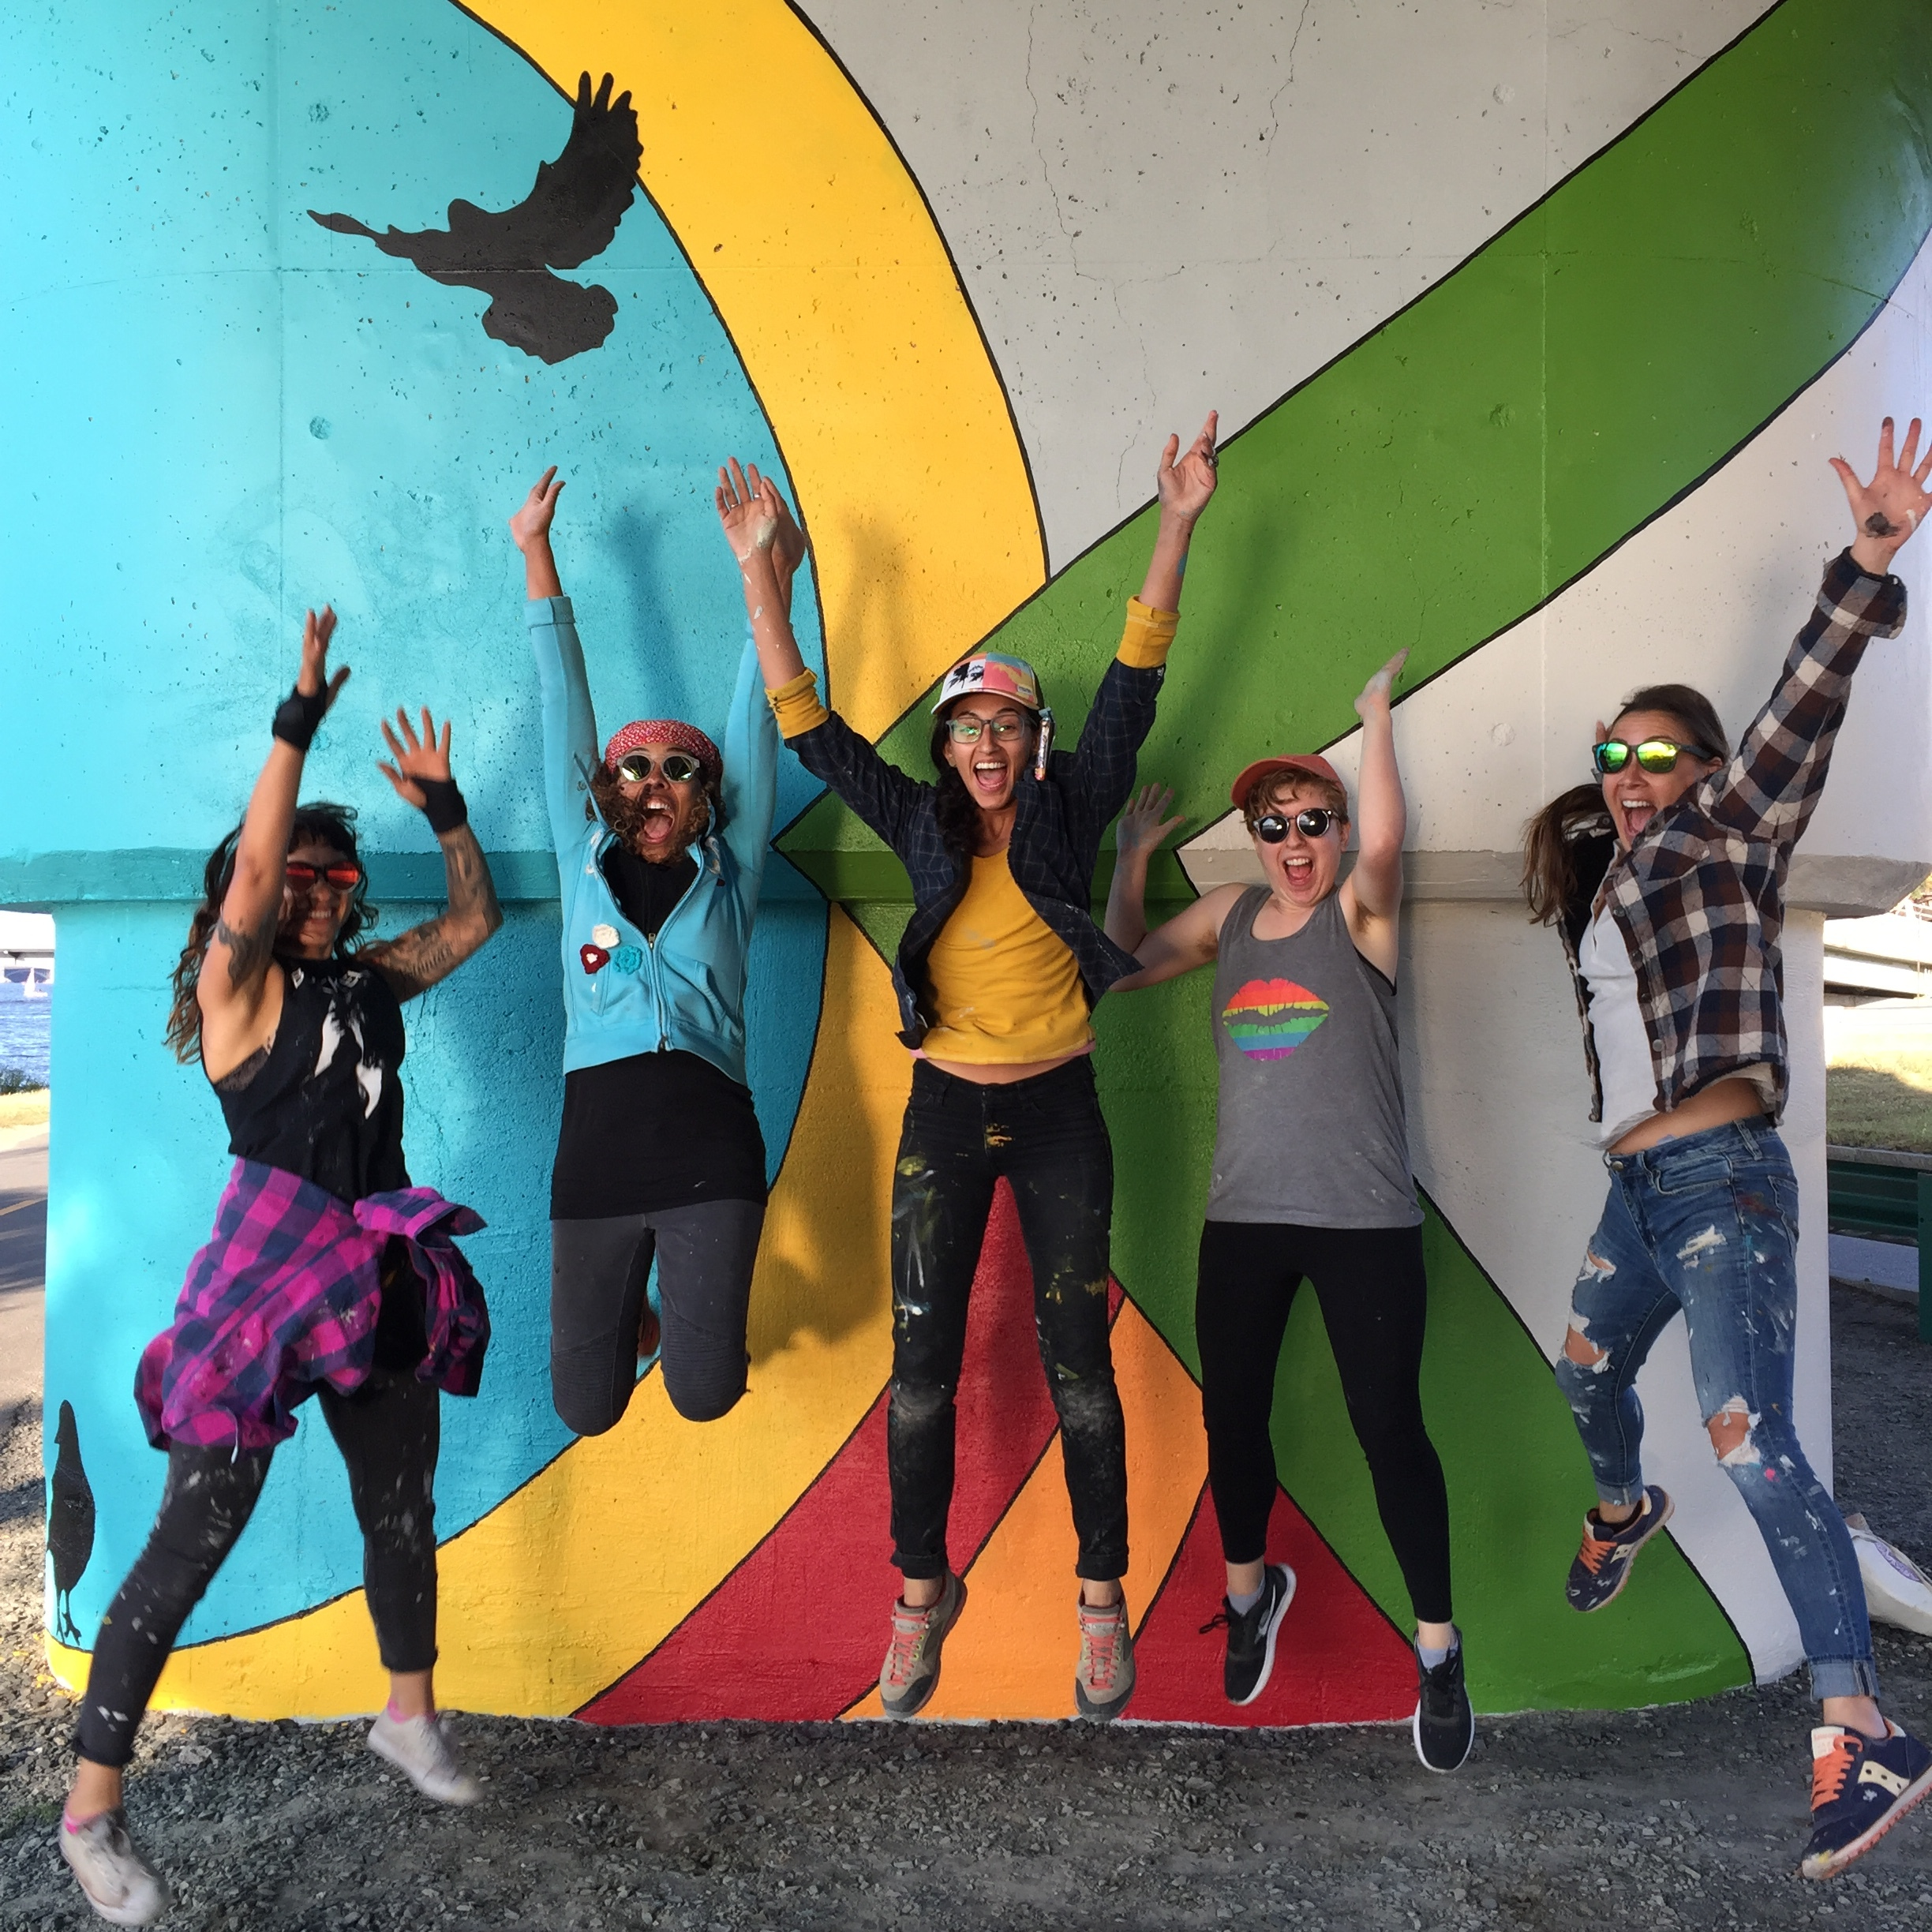 Pictured L to R Silvi Naci, Silvia Lopez Chavez, Sara Barrientos, Maddie Doctor, Laura Menucci -- photo by Dominic Chavez